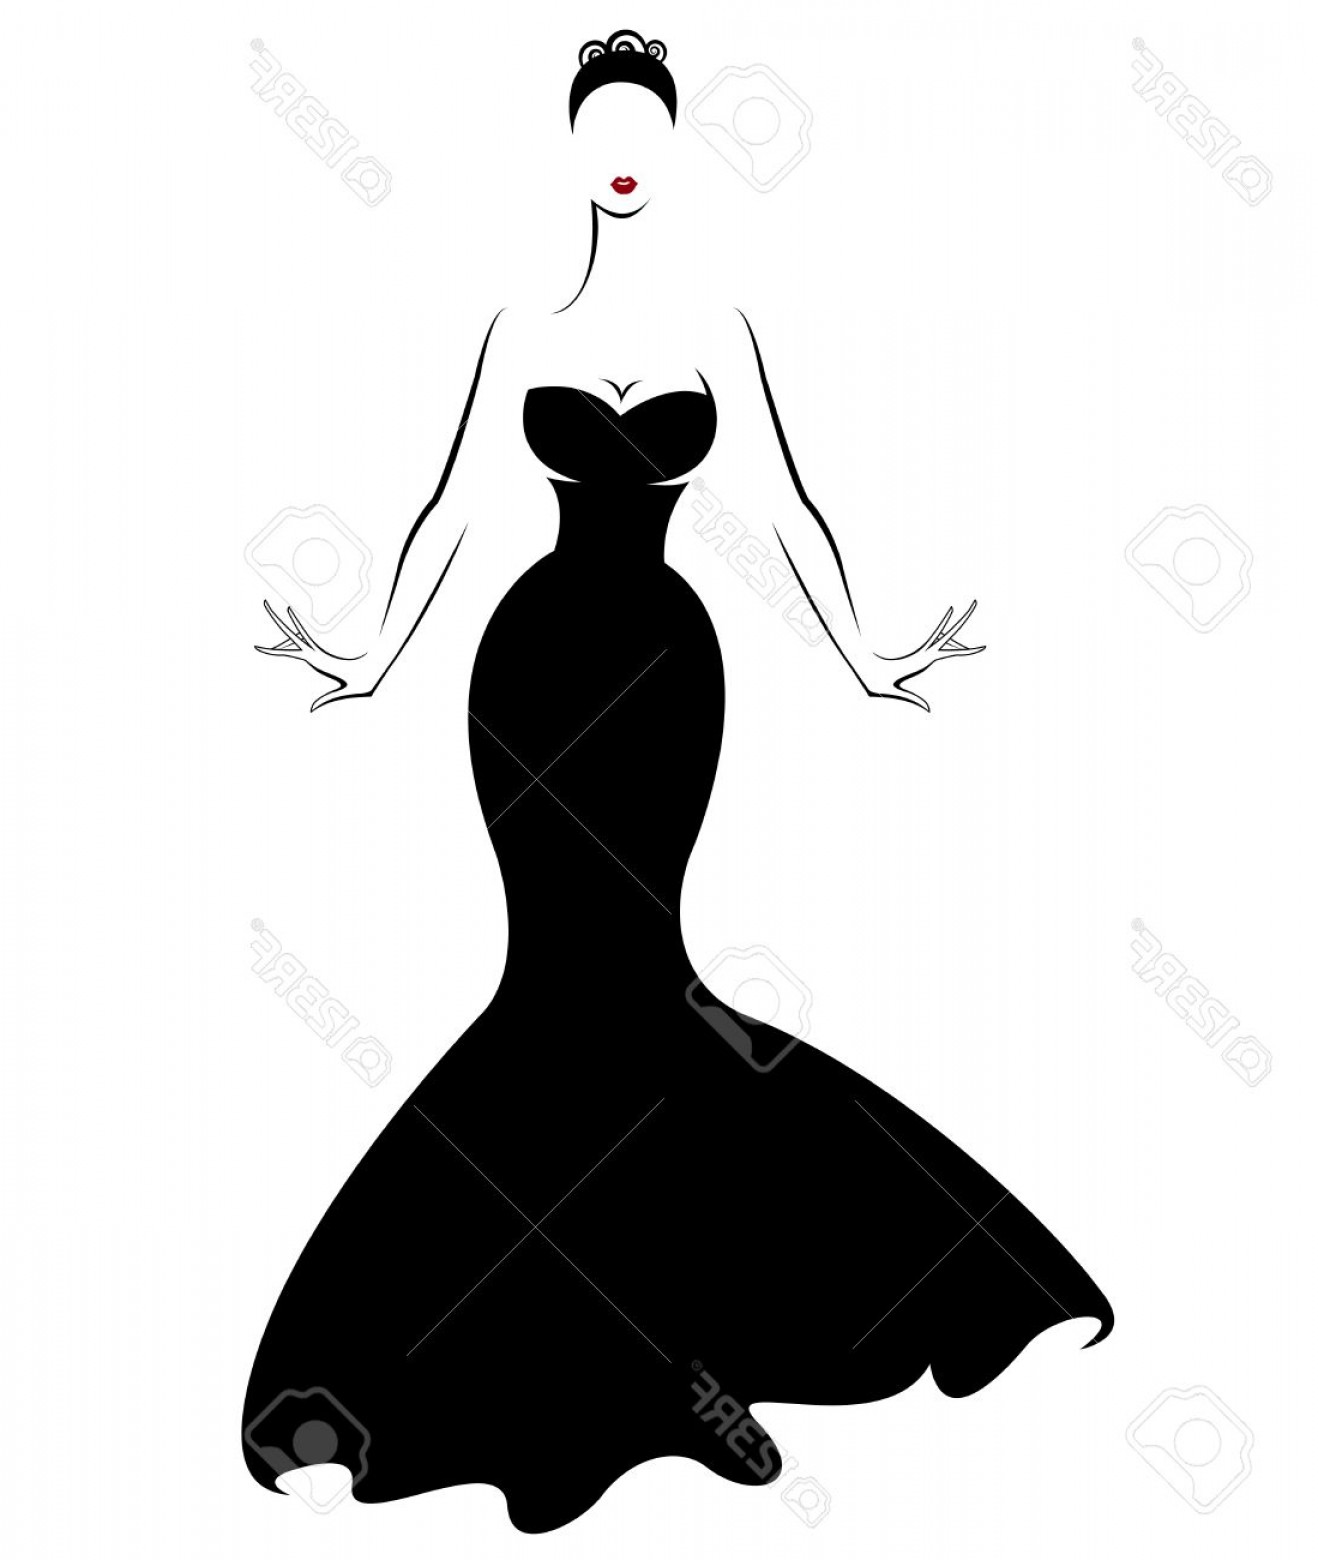 Vector Images Of Black And White Dresses: Photostock Vector Illustration Vector Of Women Silhouette Icon Women Body In Black Dress On White Background